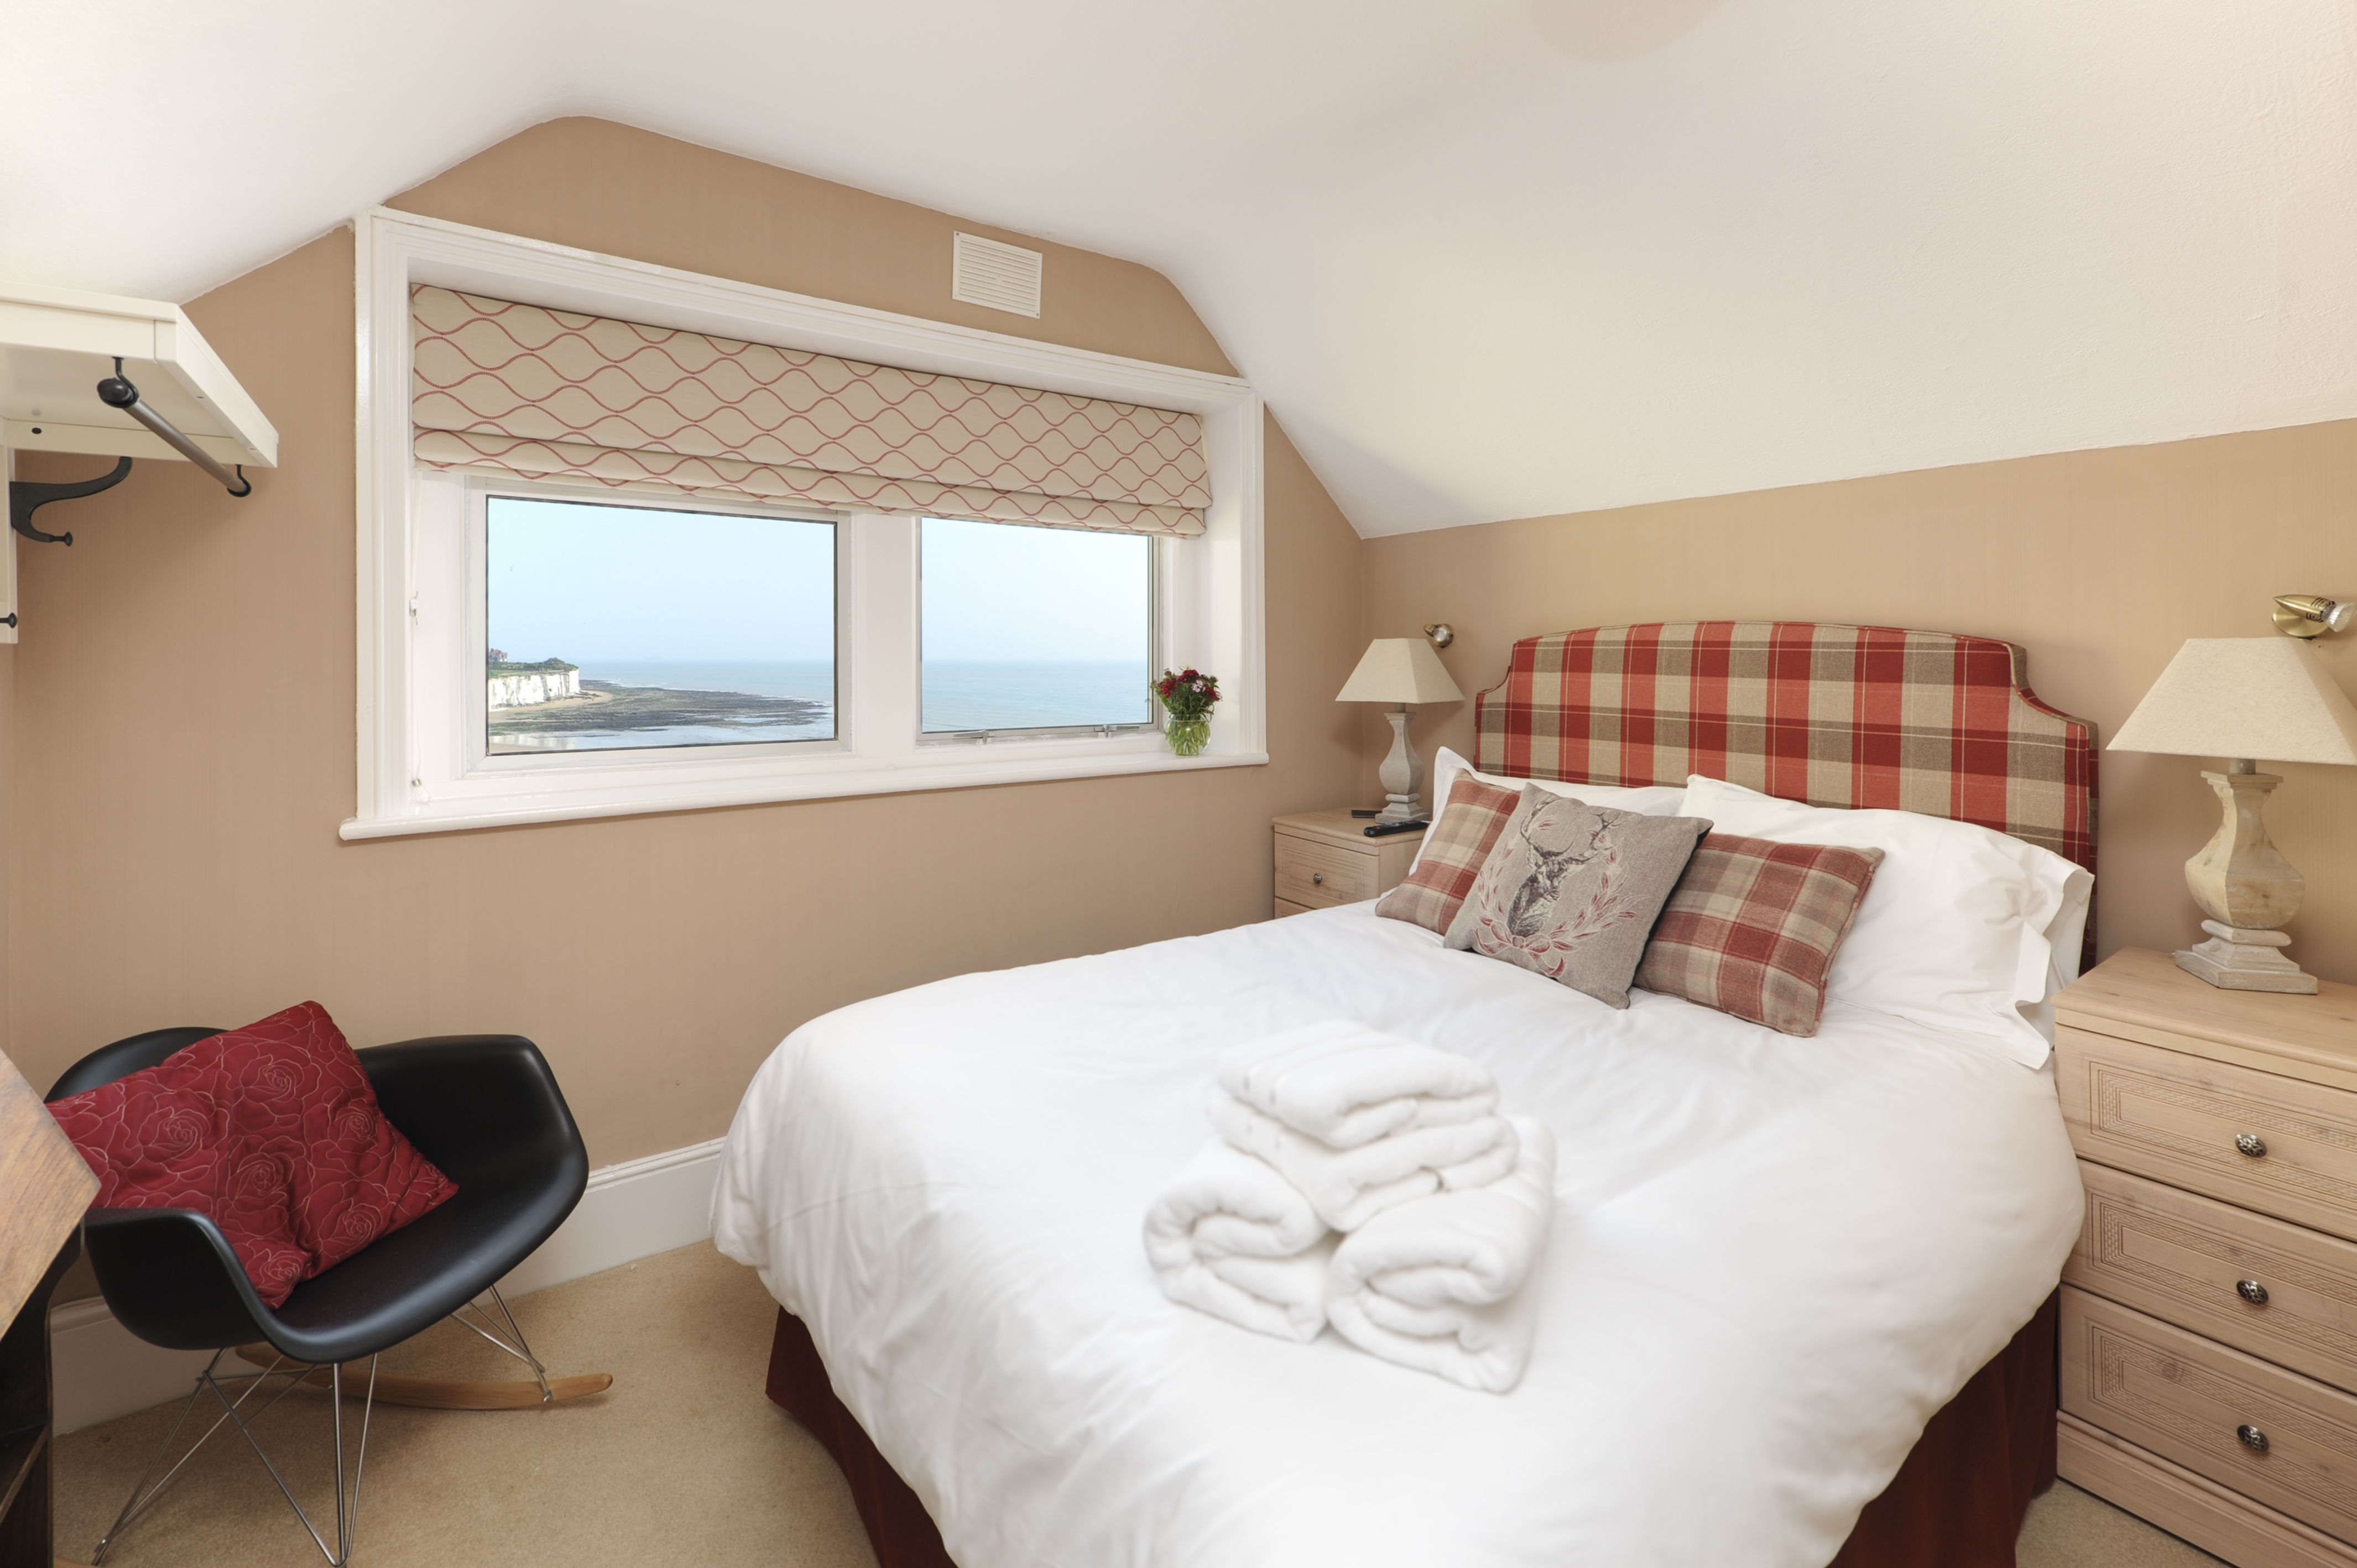 Bed with window behind it  room with view of sea and cliffs to our left prior to our